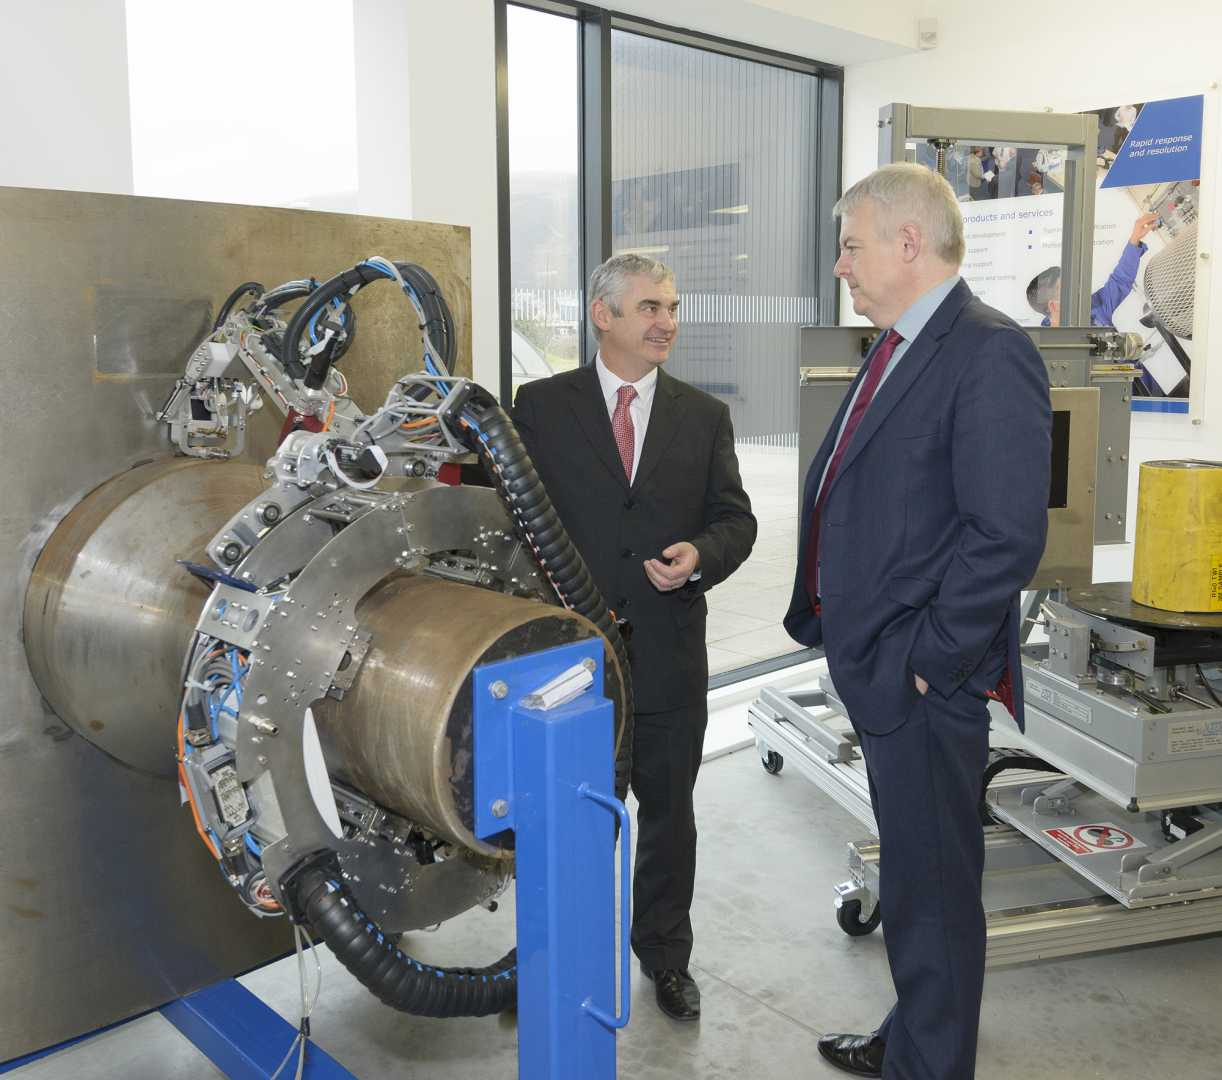 First Minister of Wales, Carwyn Jones, visited TWI Technology Centre in Port Talbot this week to announce EU funding in support of a new research institute for advanced engineering.